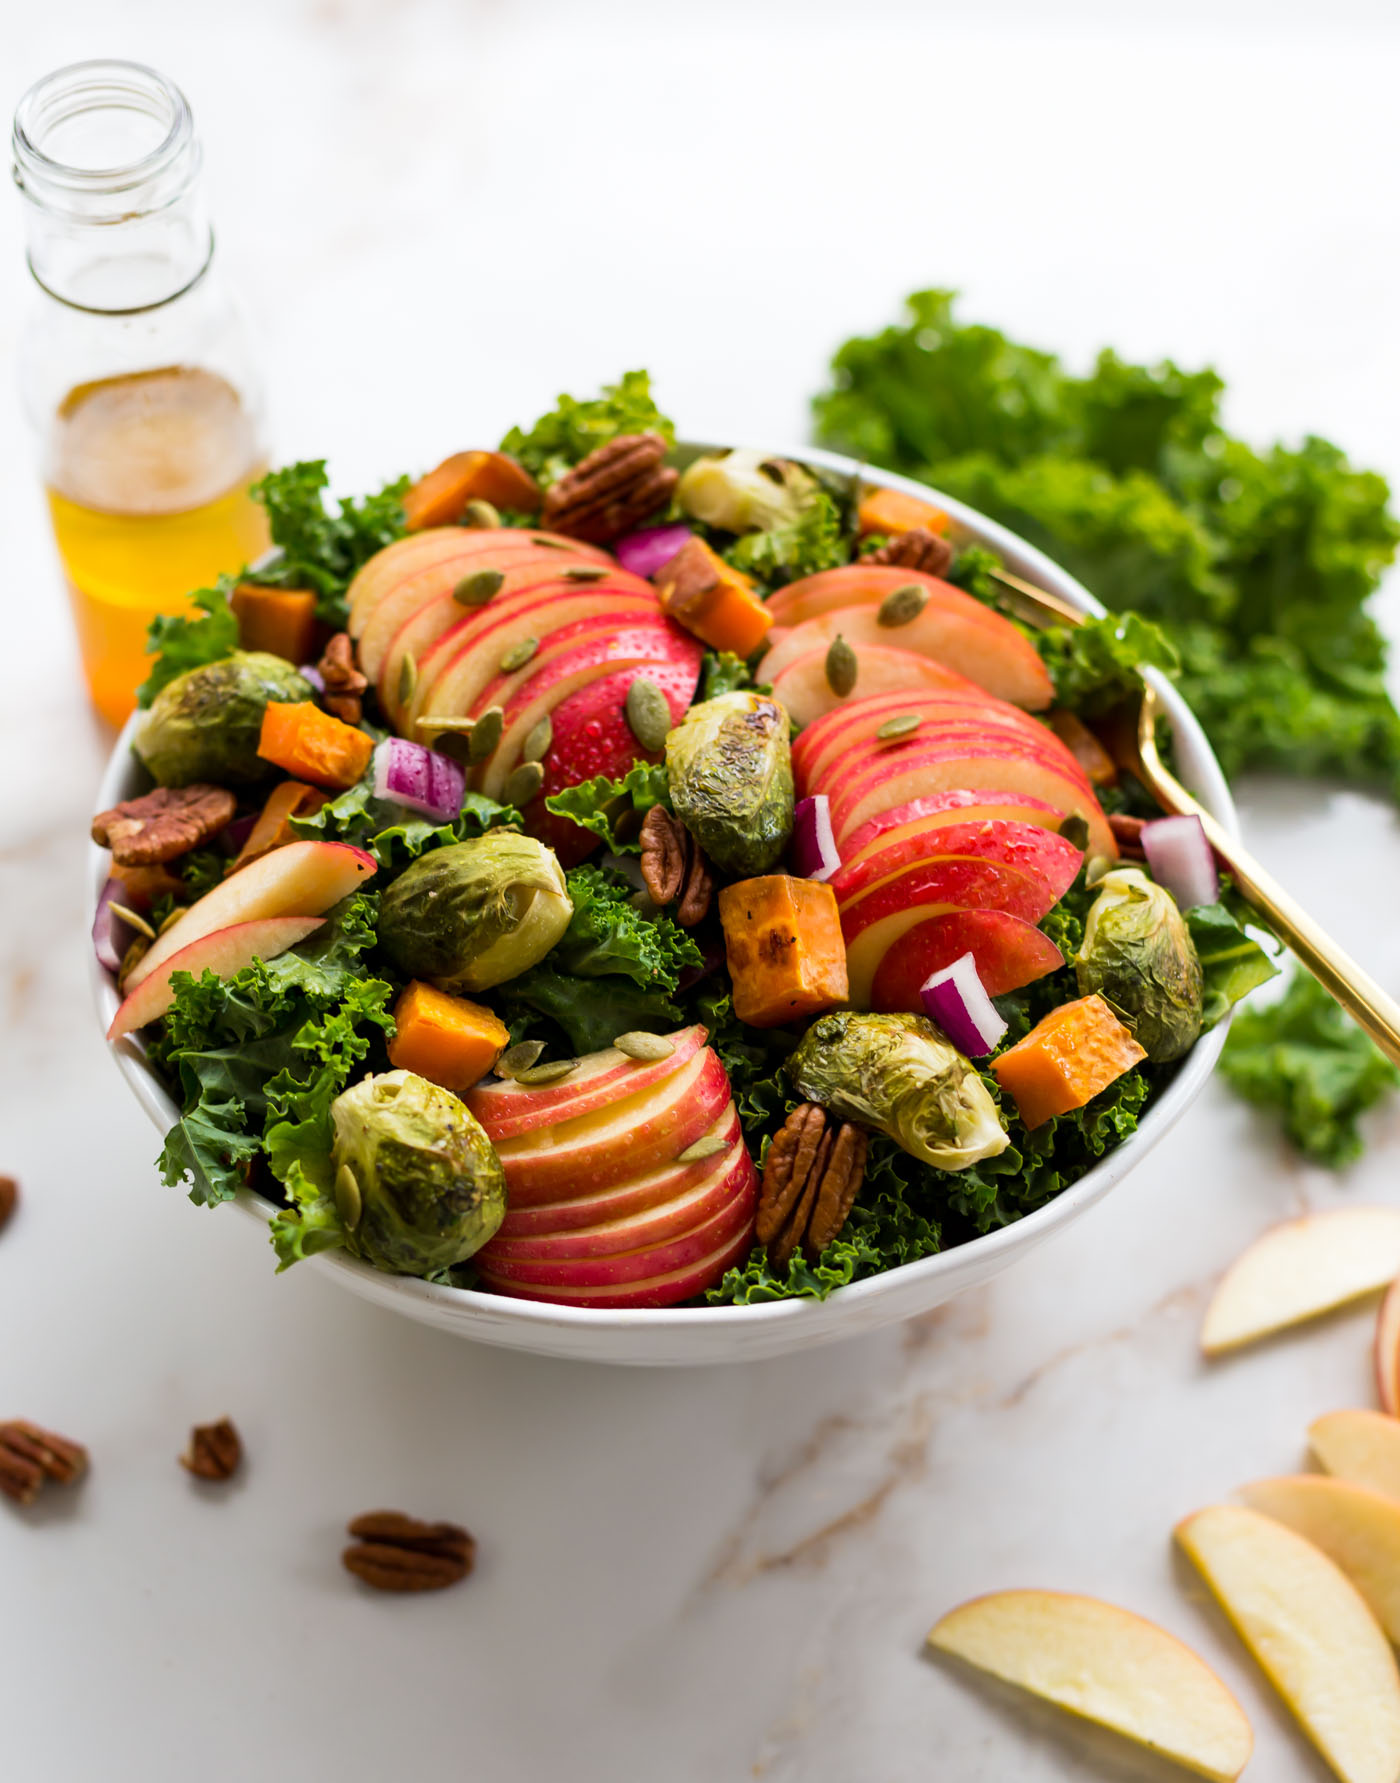 Fall Kale Salad with apples, brussel sprouts, sweet potato, pecans, pumpkin seeds, and purple onions in a white salad bowl.